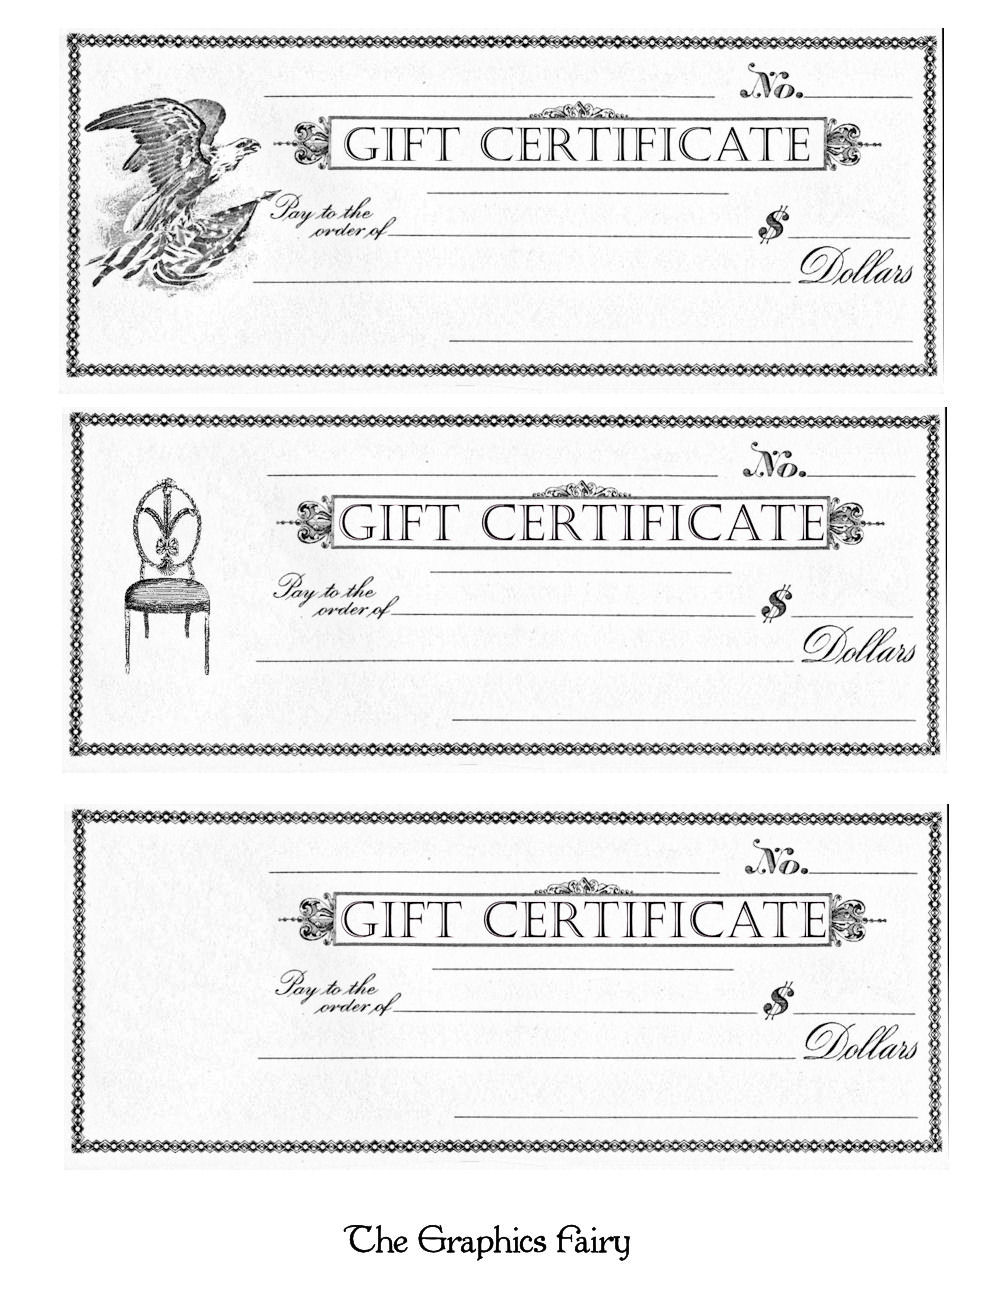 holiday gift certificate template free printable - free printable gift certificates the graphics fairy